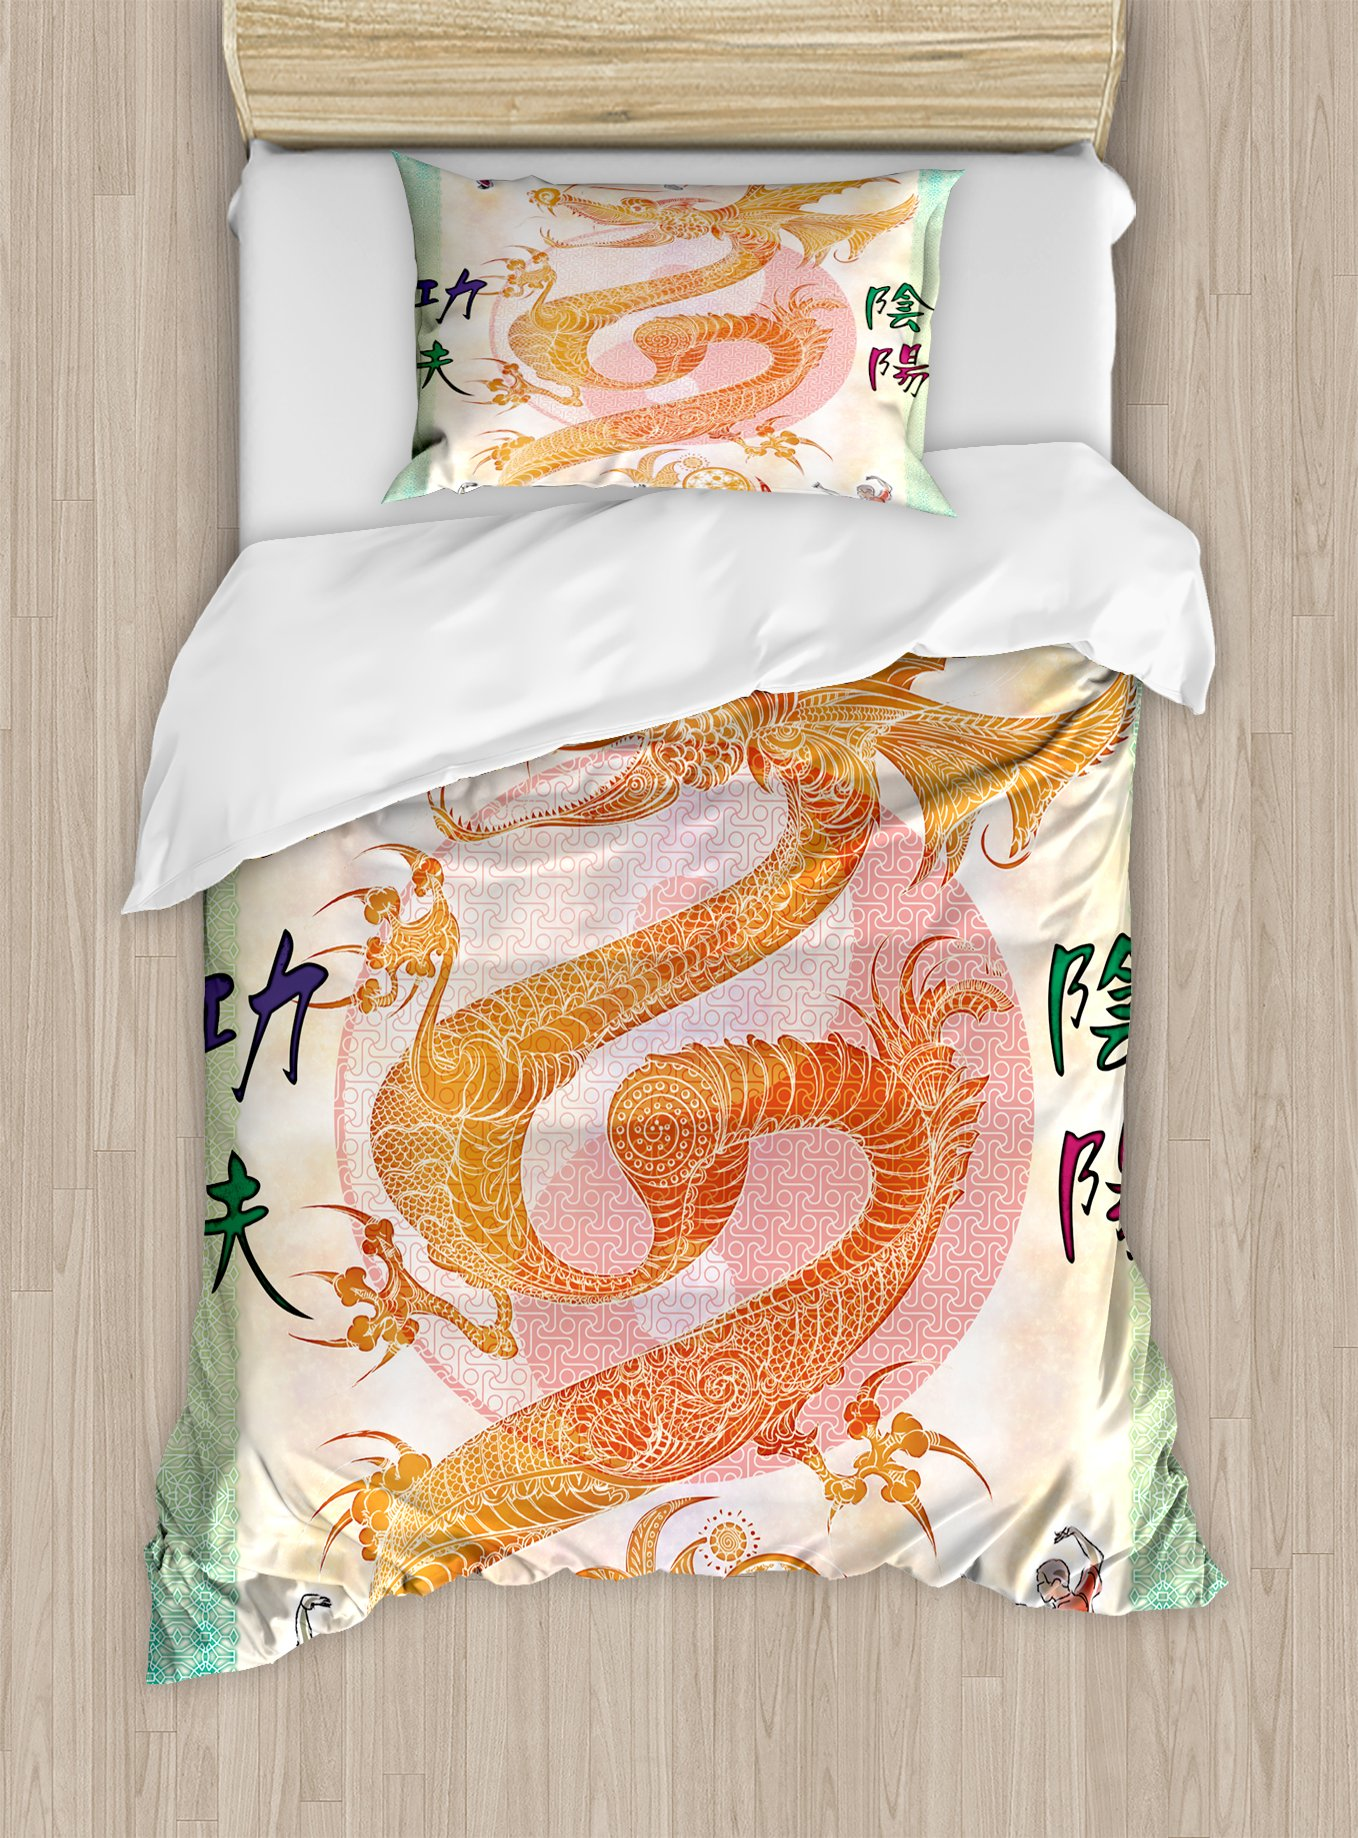 Ambesonne Dragon Duvet Cover Set Twin Size, Asian Chinese Dragon with Martial Arts Figures Japanese Samurai Ying Yang Picture, Decorative 2 Piece Bedding Set with 1 Pillow Sham, Multicolor